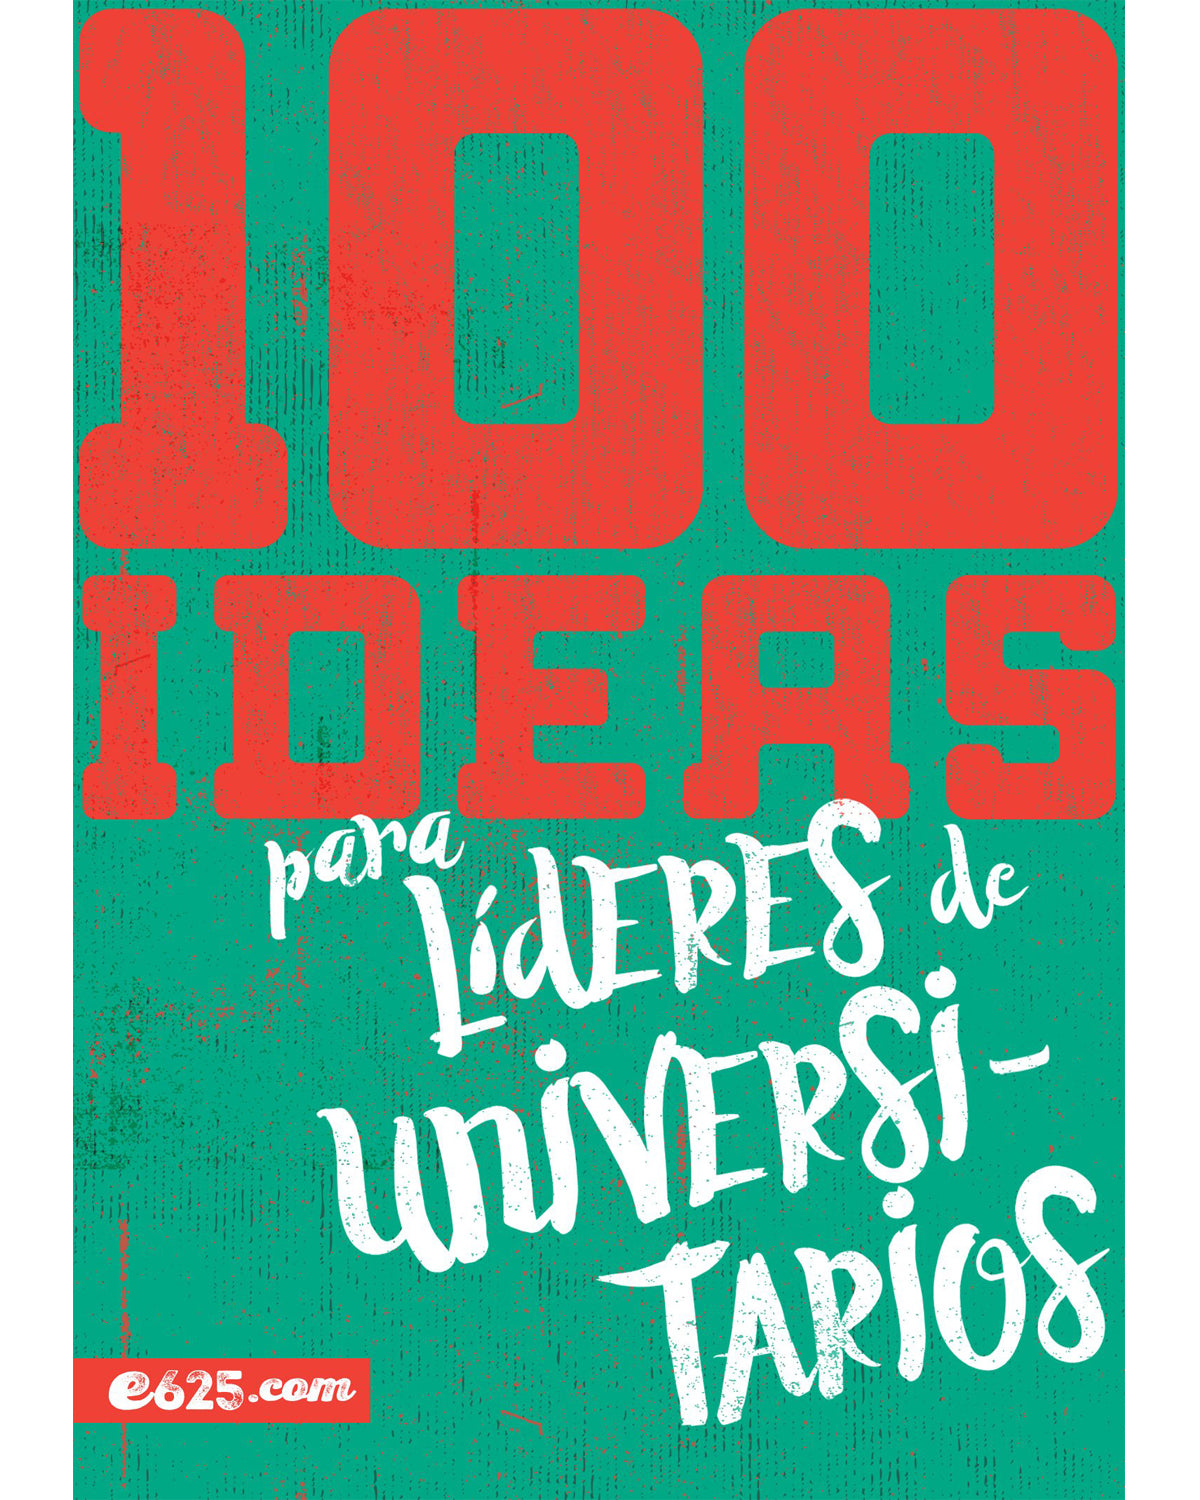 100 Ideas Para Lideres Universitarios-Editorial Portavoz